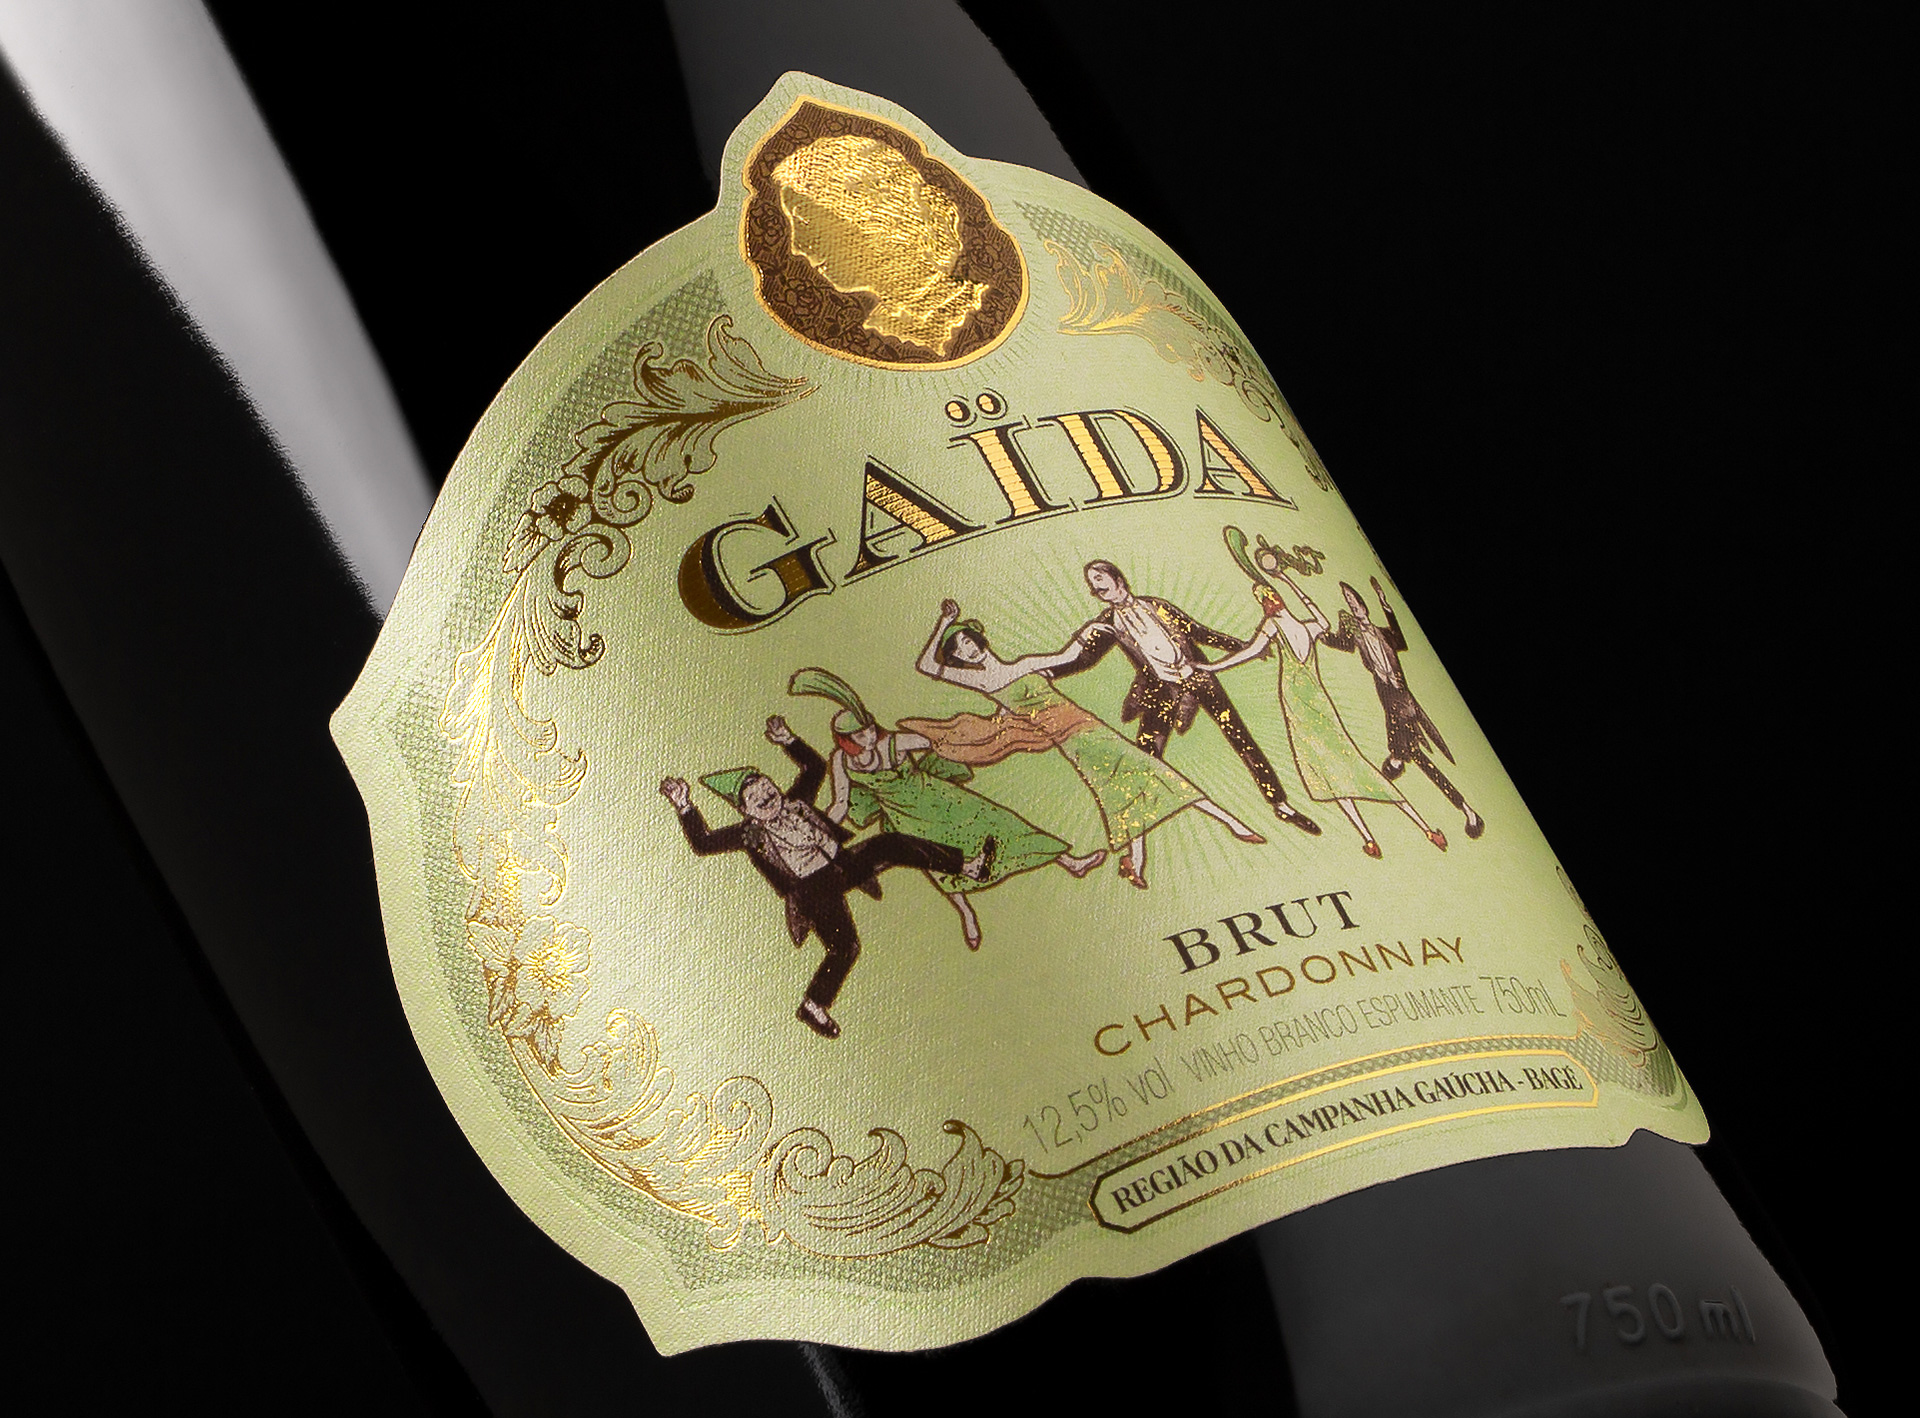 Gaïda Sparkling Wine Packaging Labels Created by Holy Studio